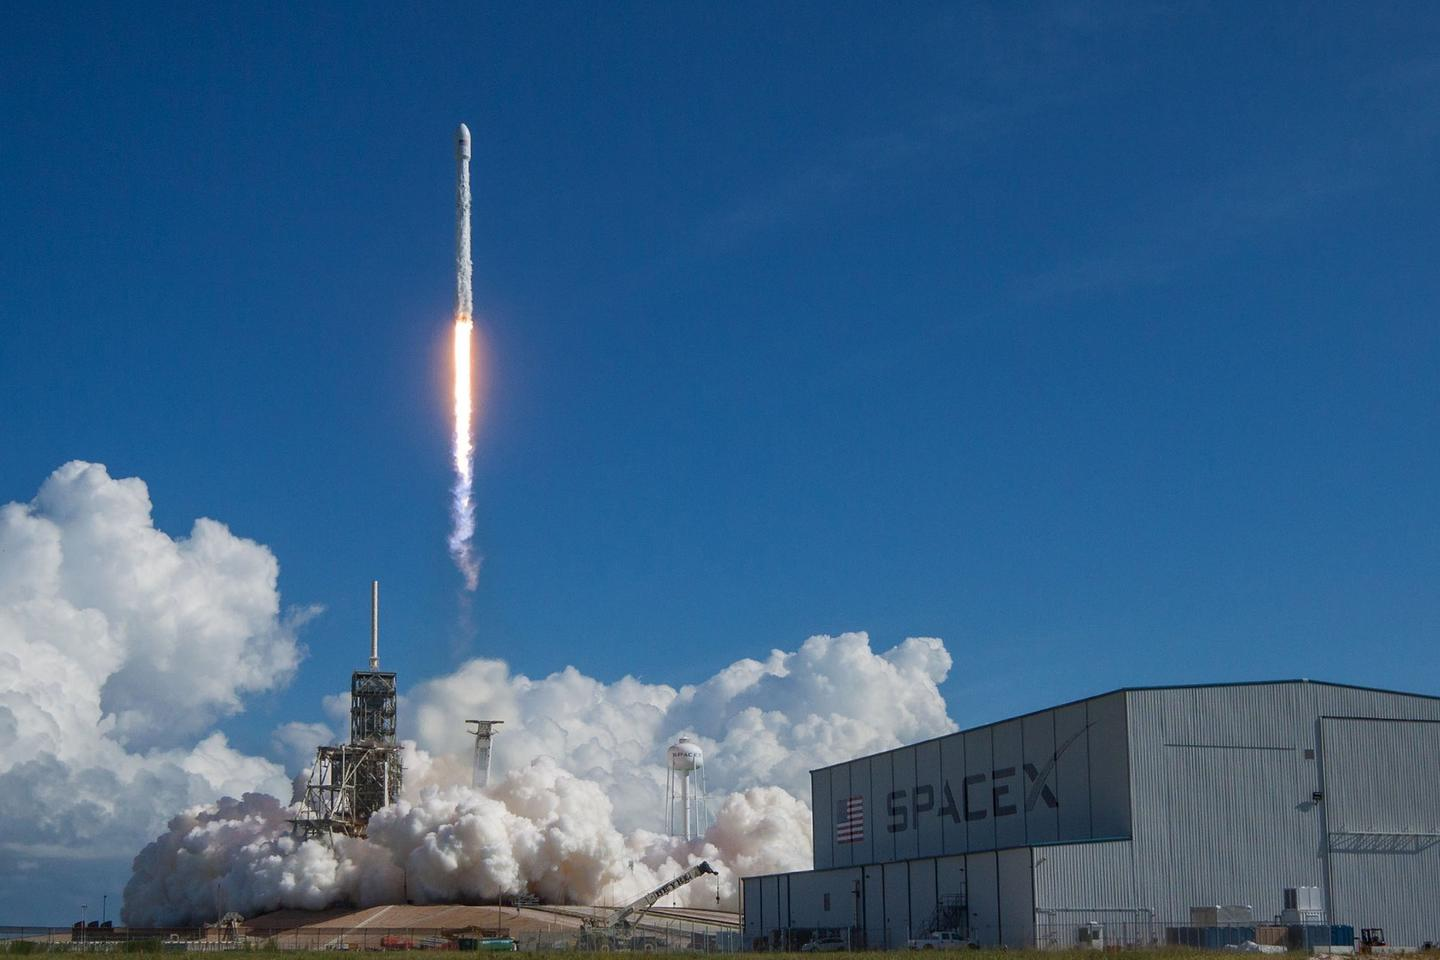 SpaceX is now looking to muscle into the small satellite game with a new launch program specifically for firing tiny payloads into space atop its Falcon 9 rocket